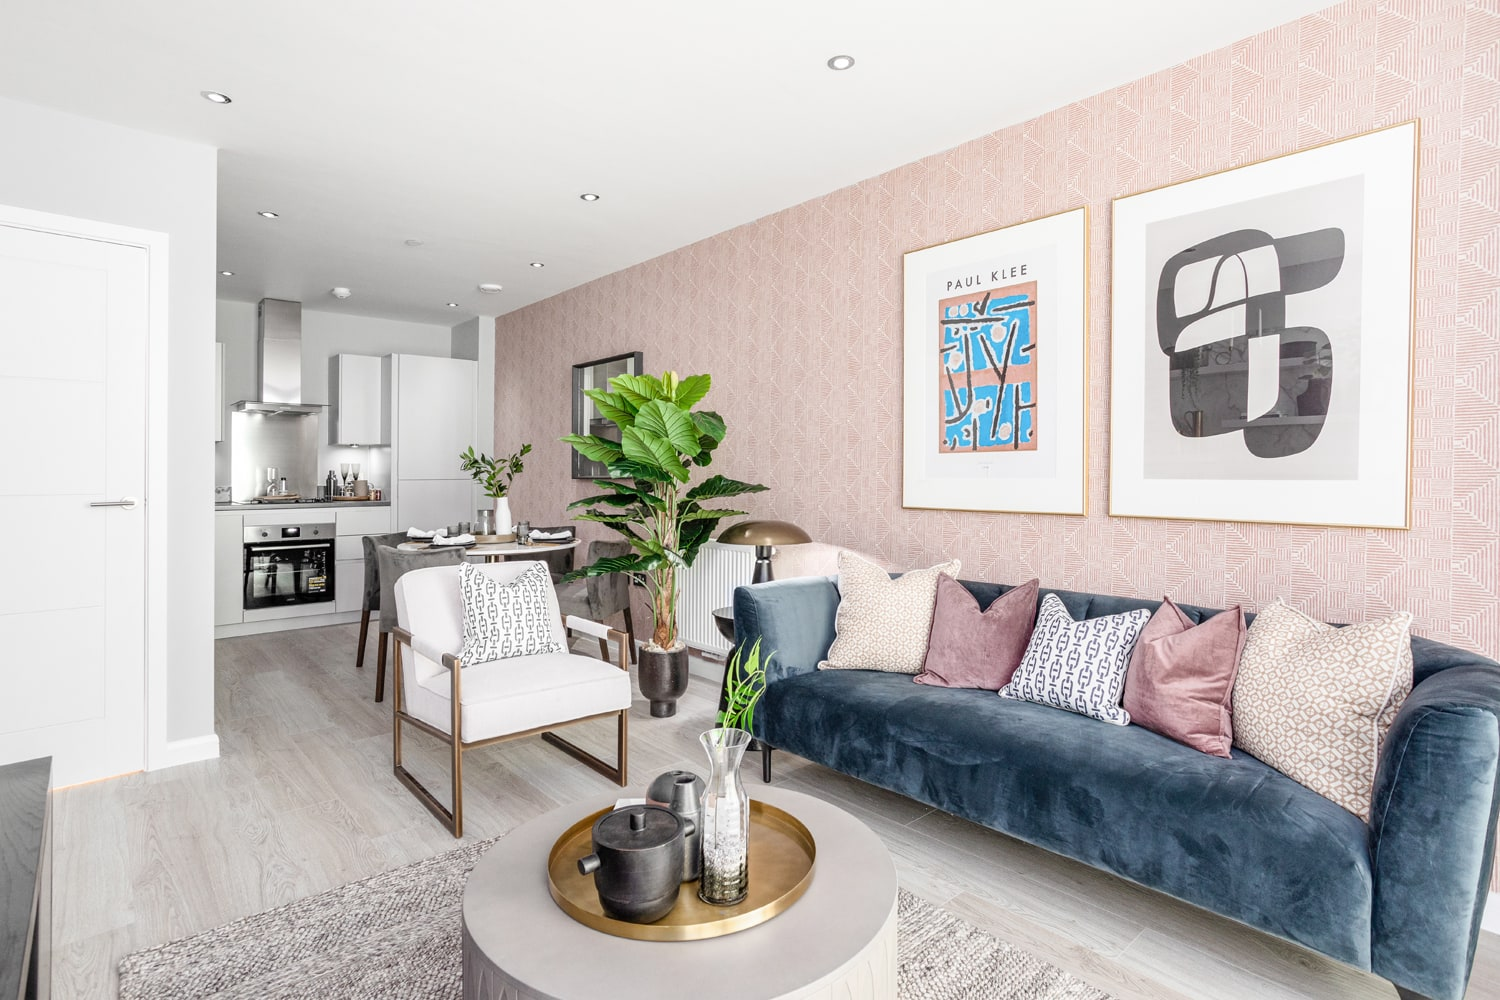 Interior photography of L&Q at The Silk District - Shared Ownership homes available through on Share to Buy